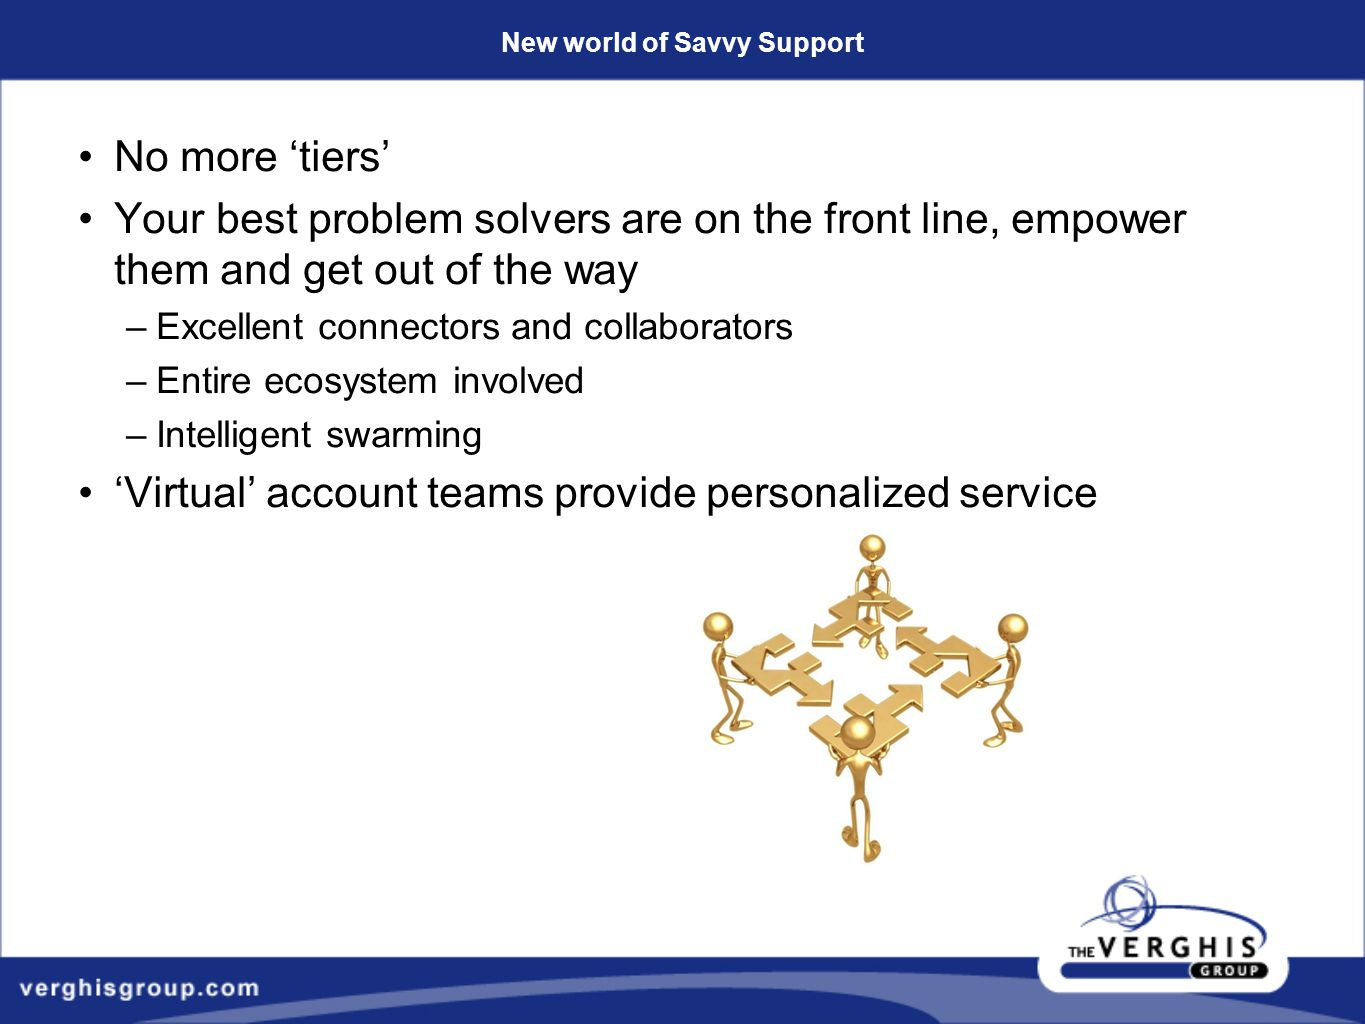 New world of Savvy Support No more 'tiers' Your best problem solvers are on the front line, empower them and get out of the way –Excellent connectors and collaborators –Entire ecosystem involved –Intelligent swarming 'Virtual' account teams provide personalized service